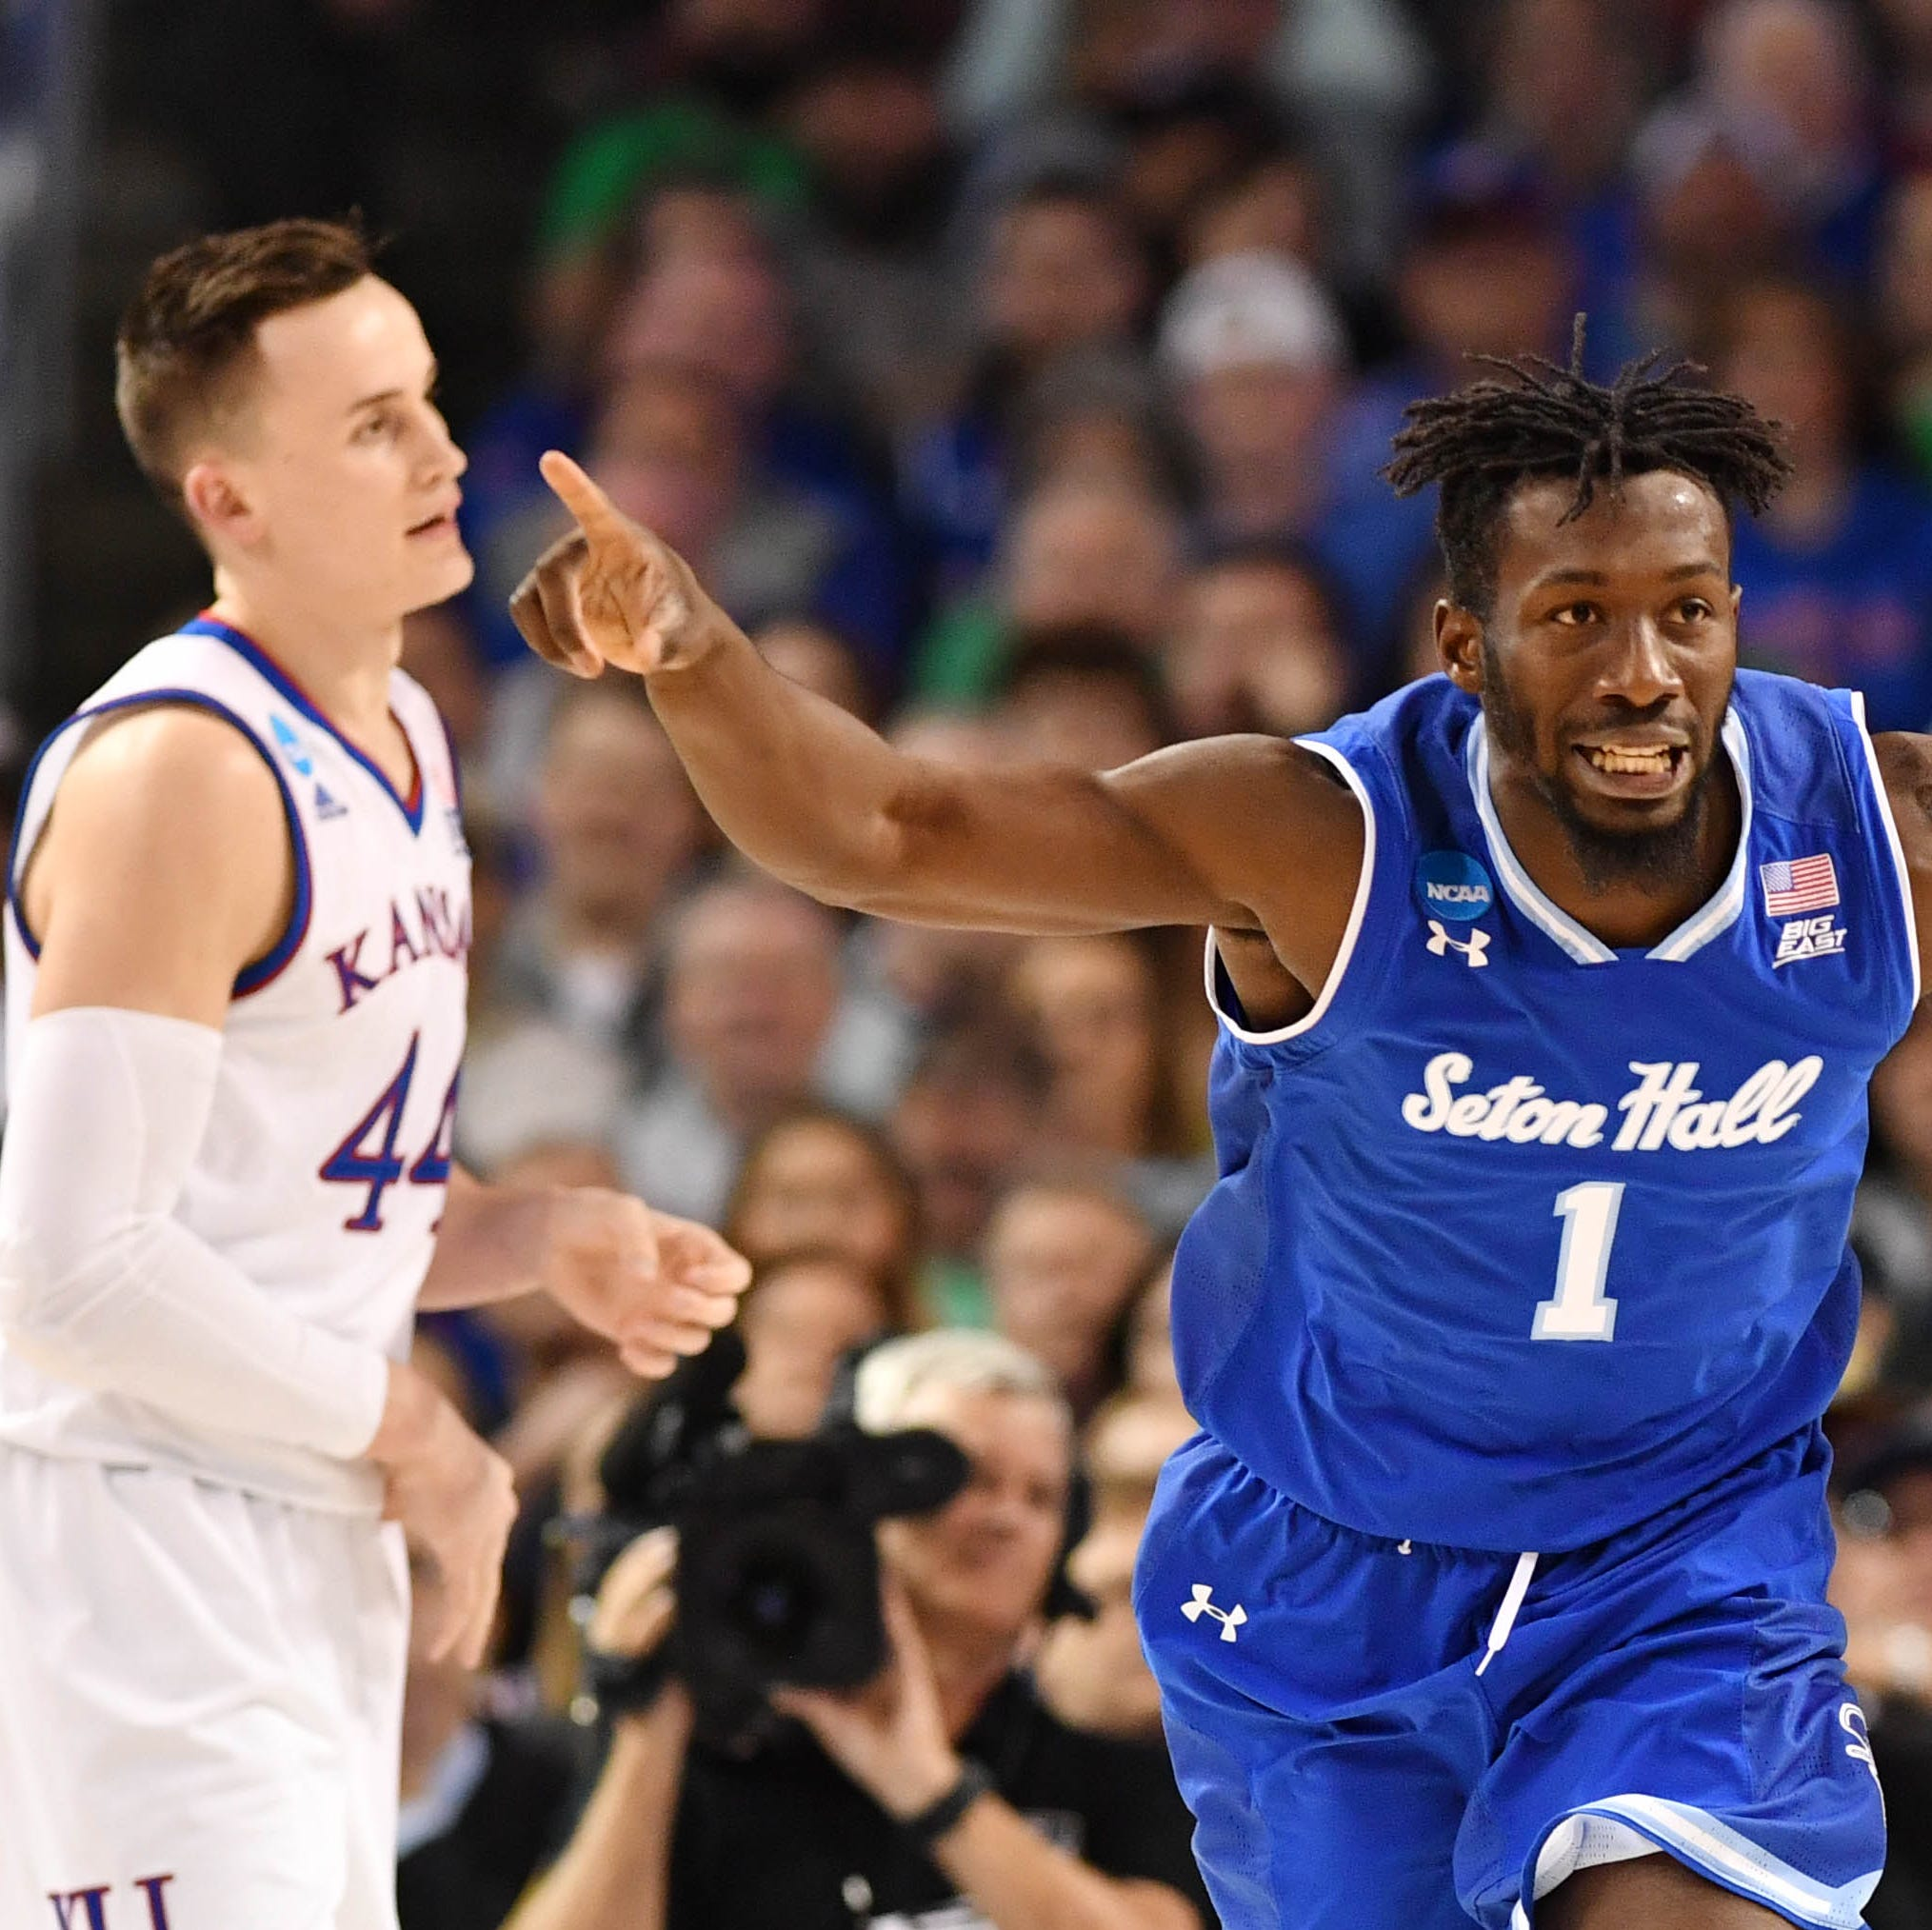 How good is Seton Hall basketball? We're about to find out at Nebraska